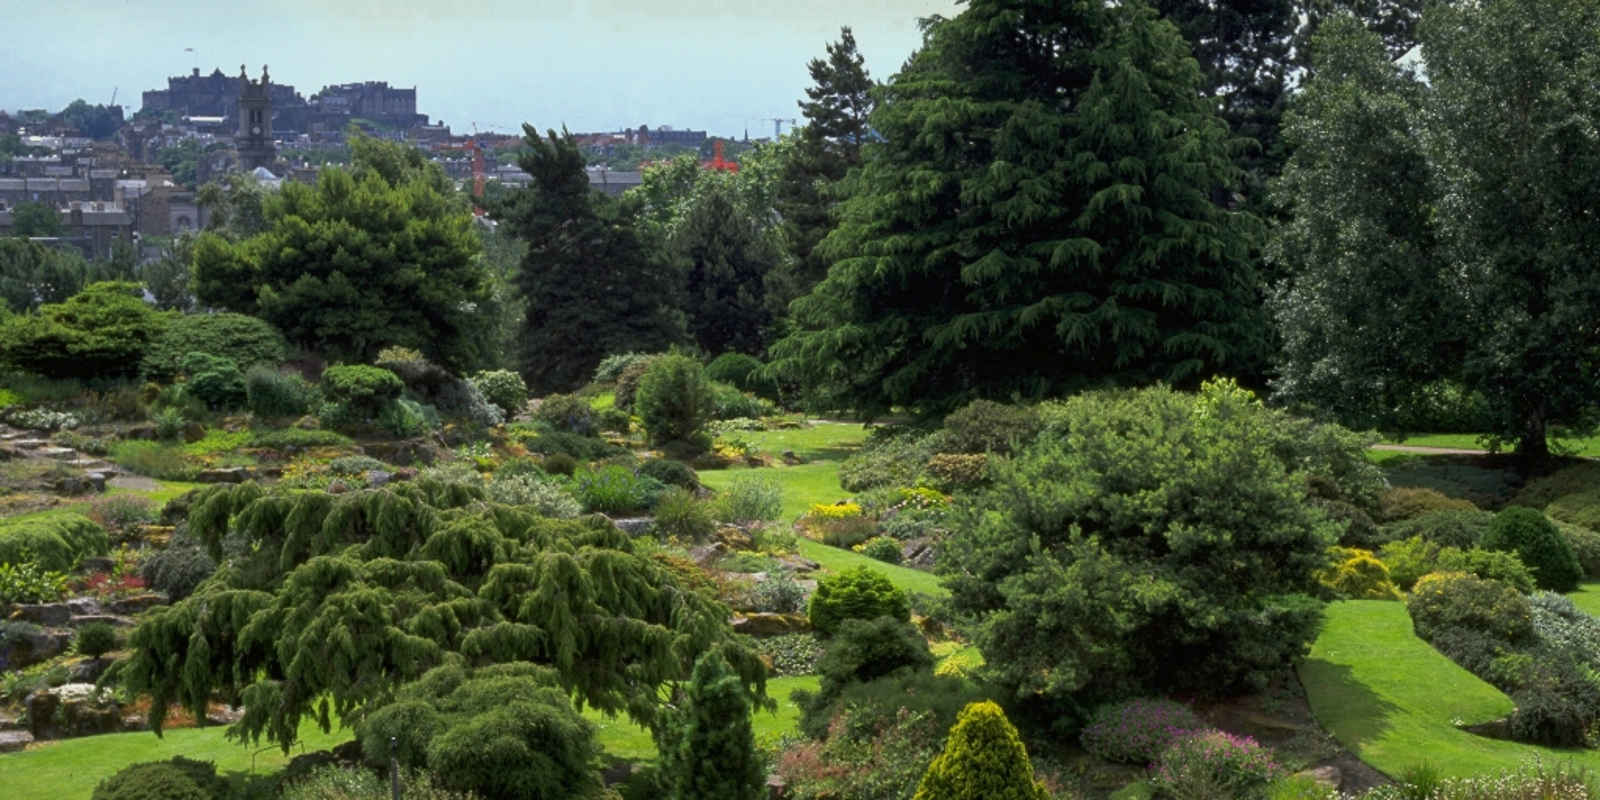 Rock Garden with Edinburgh Castle in the distance